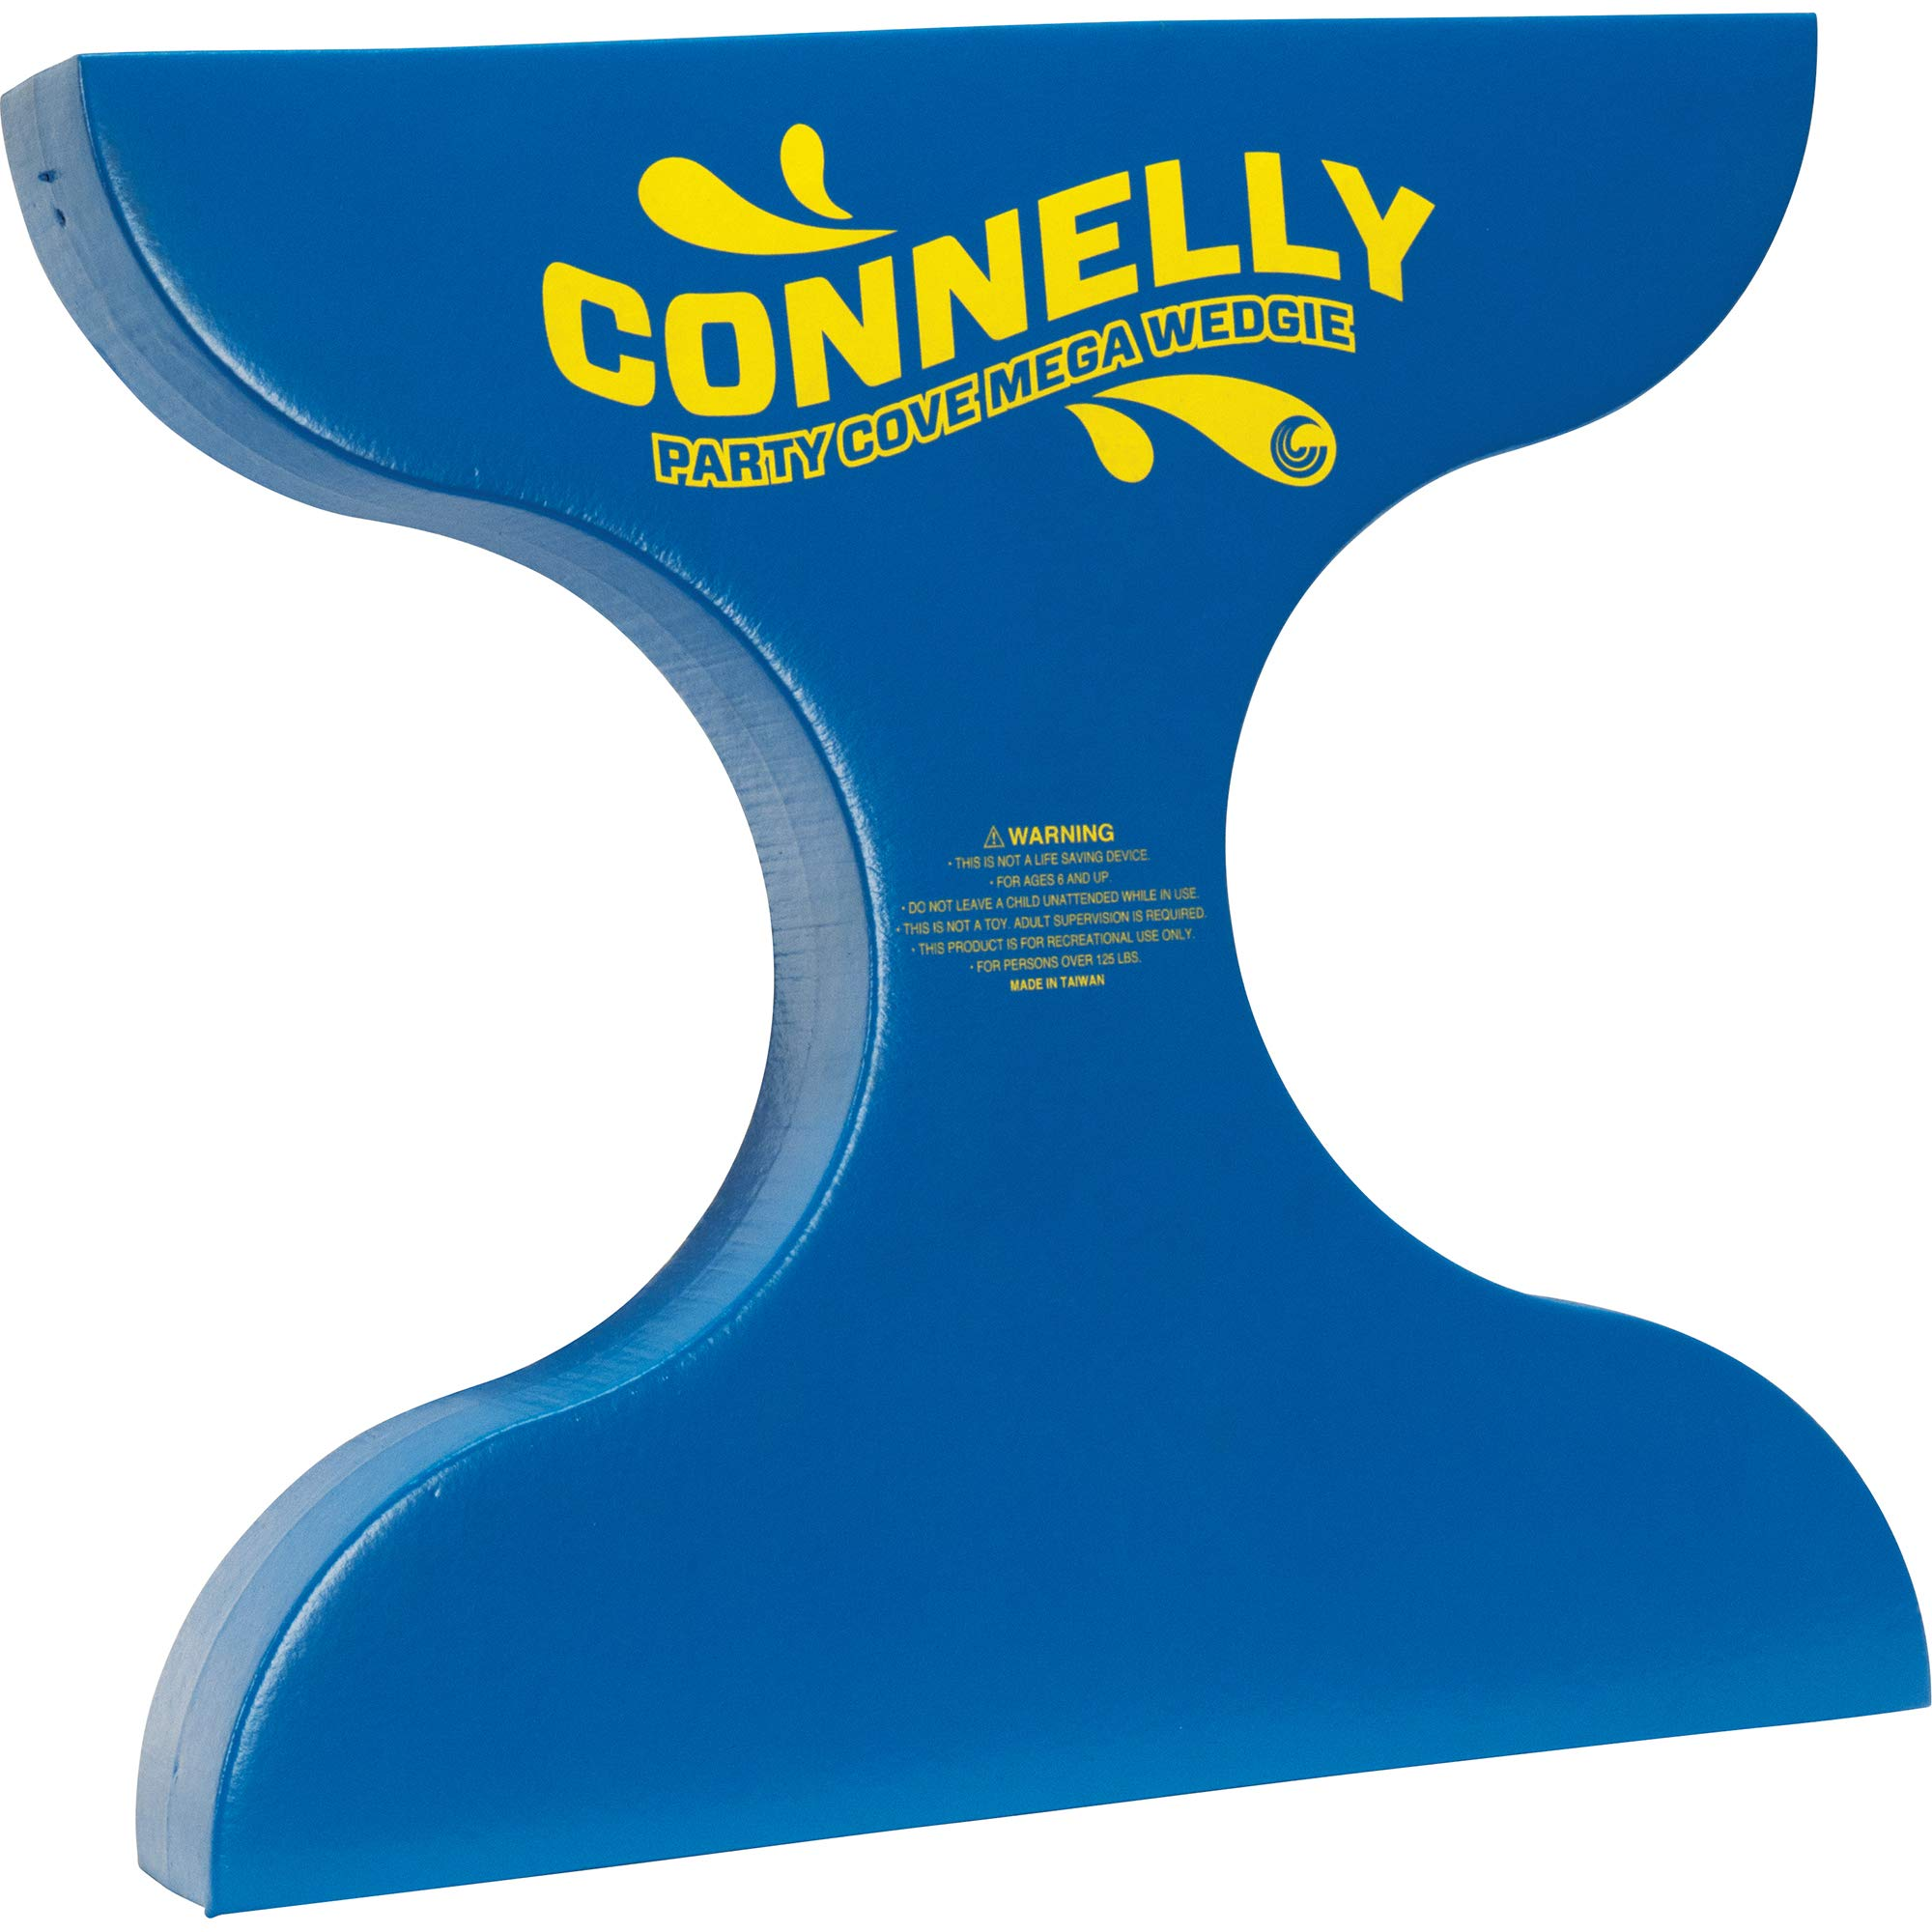 Connelly Skis Party Cove Mega Wedgie Waterskis, Blue, One Size by CWB